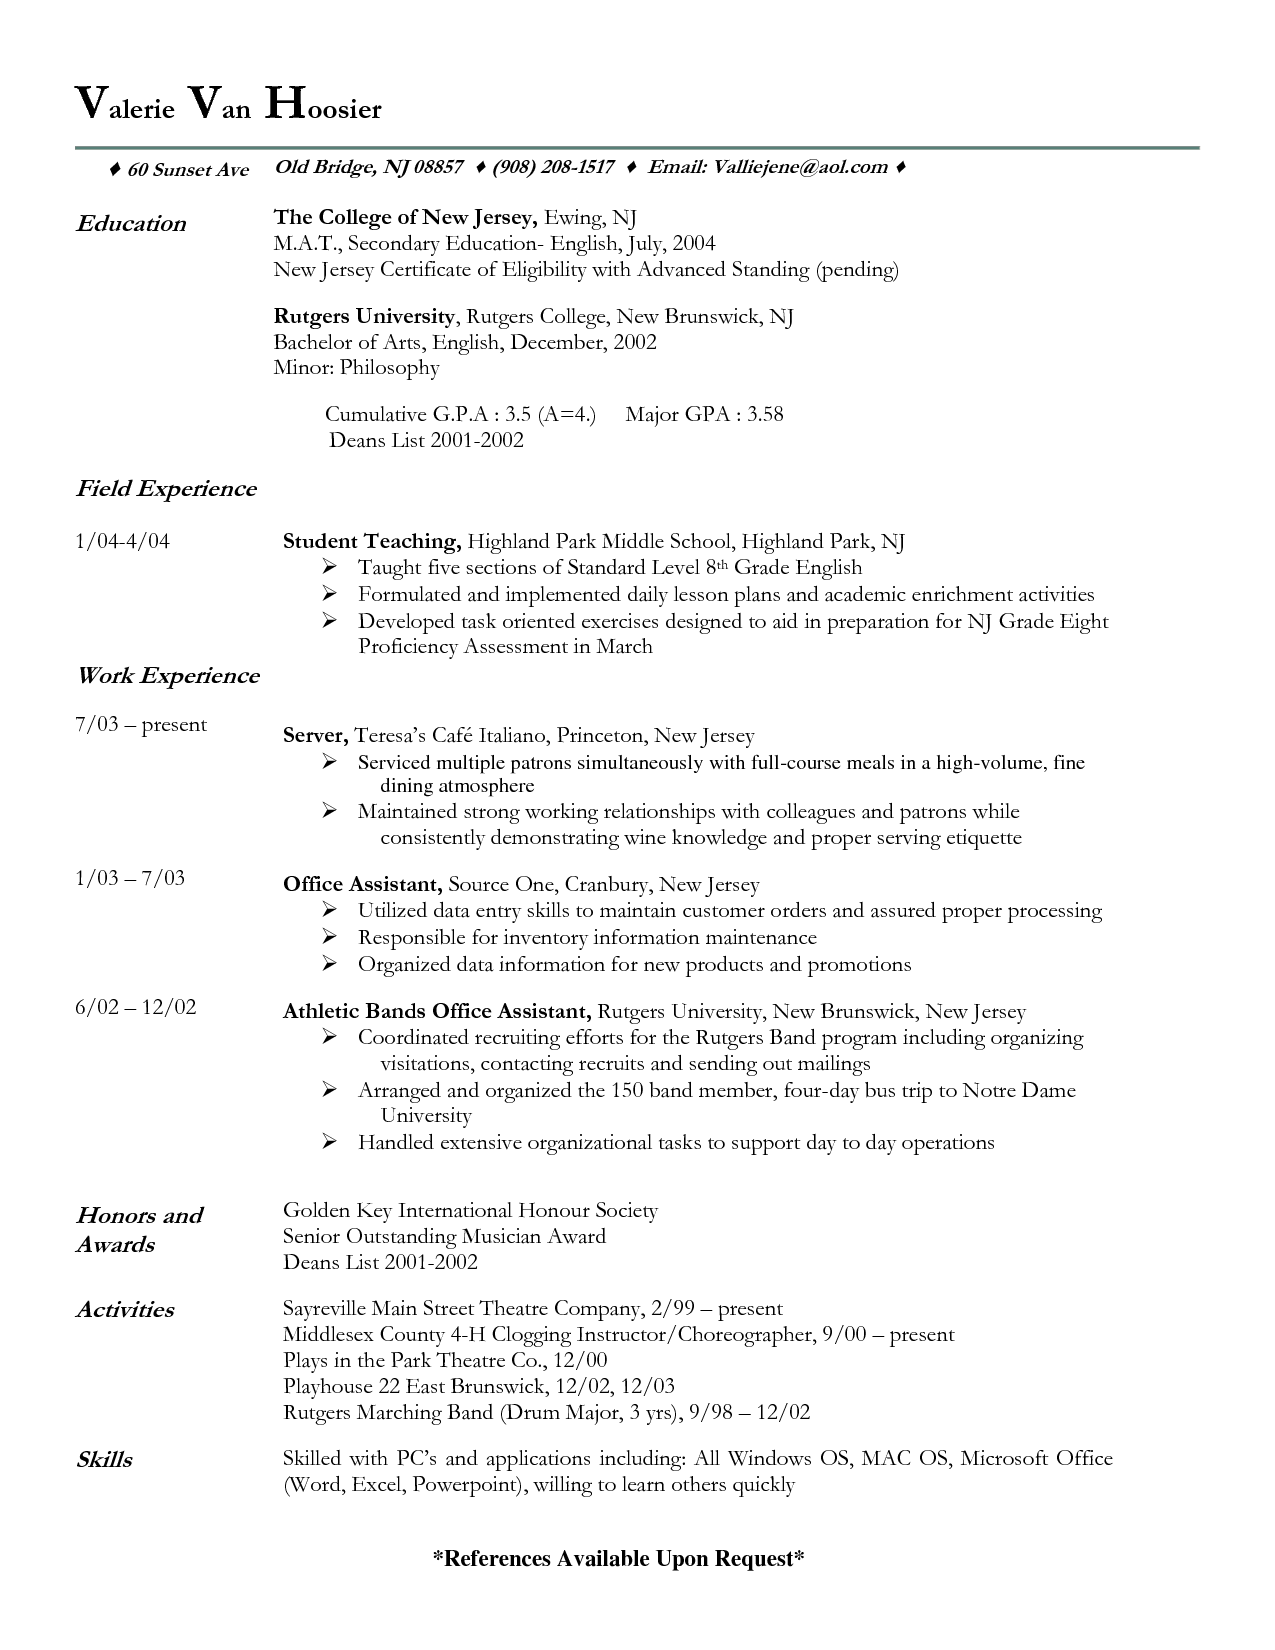 Example Job Resume Example Fine Dining Server Resume Sample  James  Pinterest